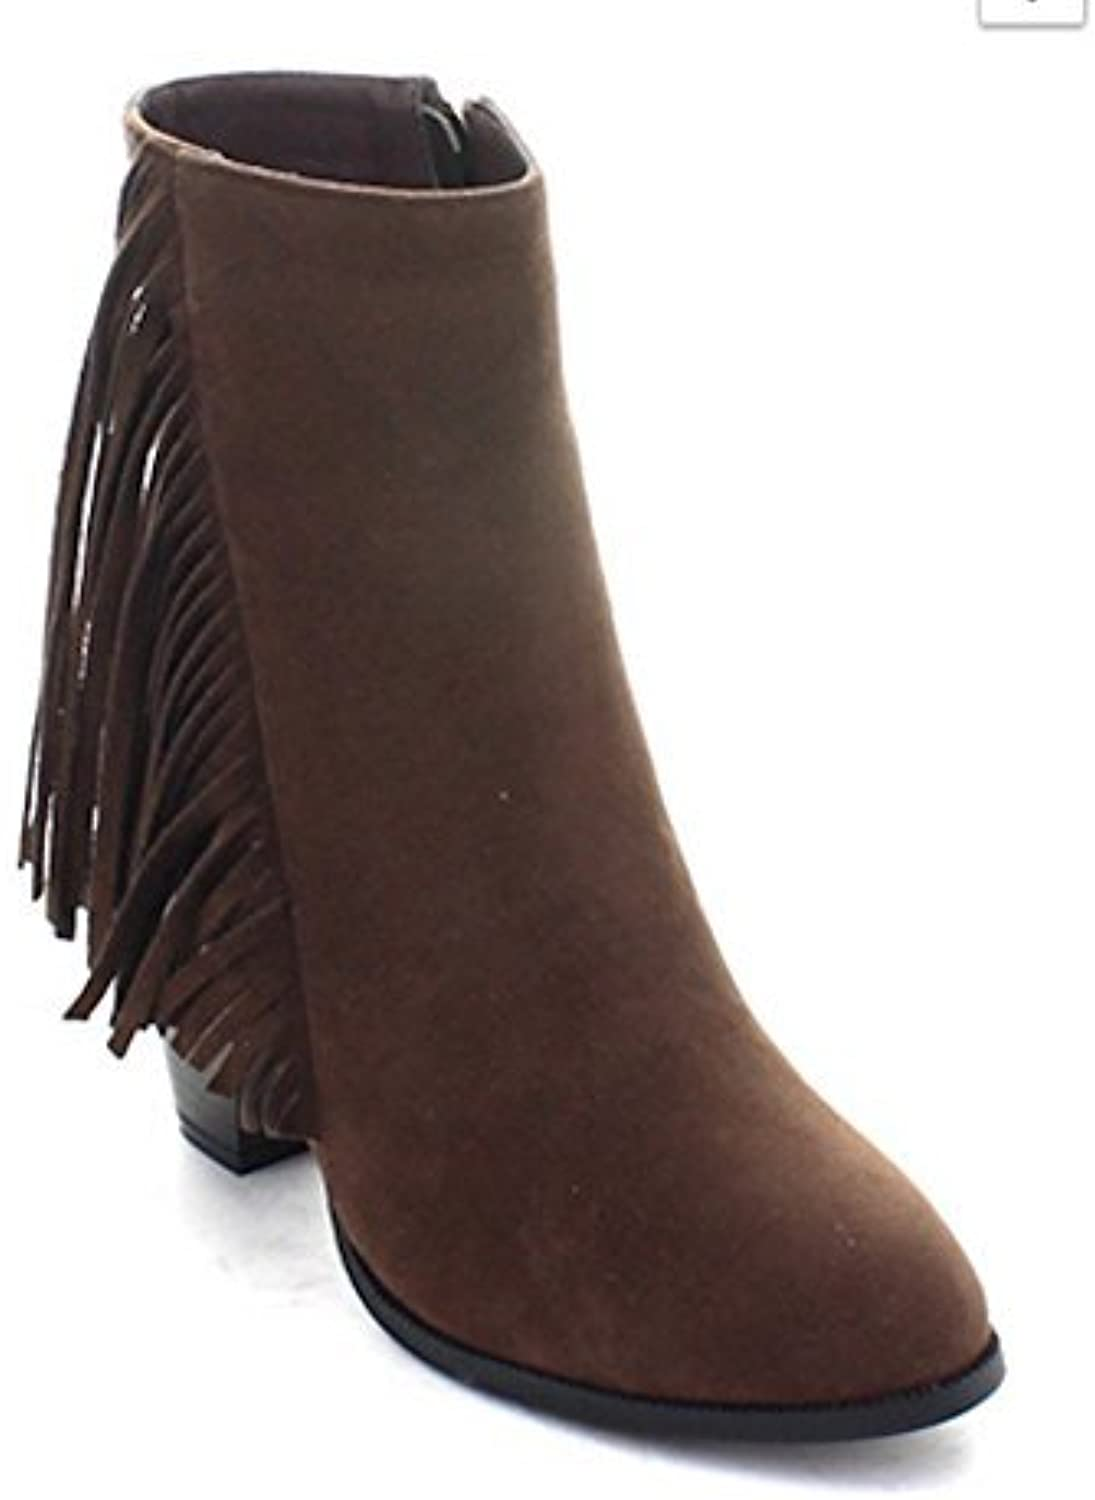 La Bella Fashion Women's greenical Fringe Stacked Heel Round Toe Ankle Dress Boots in Black, Brown, Camel